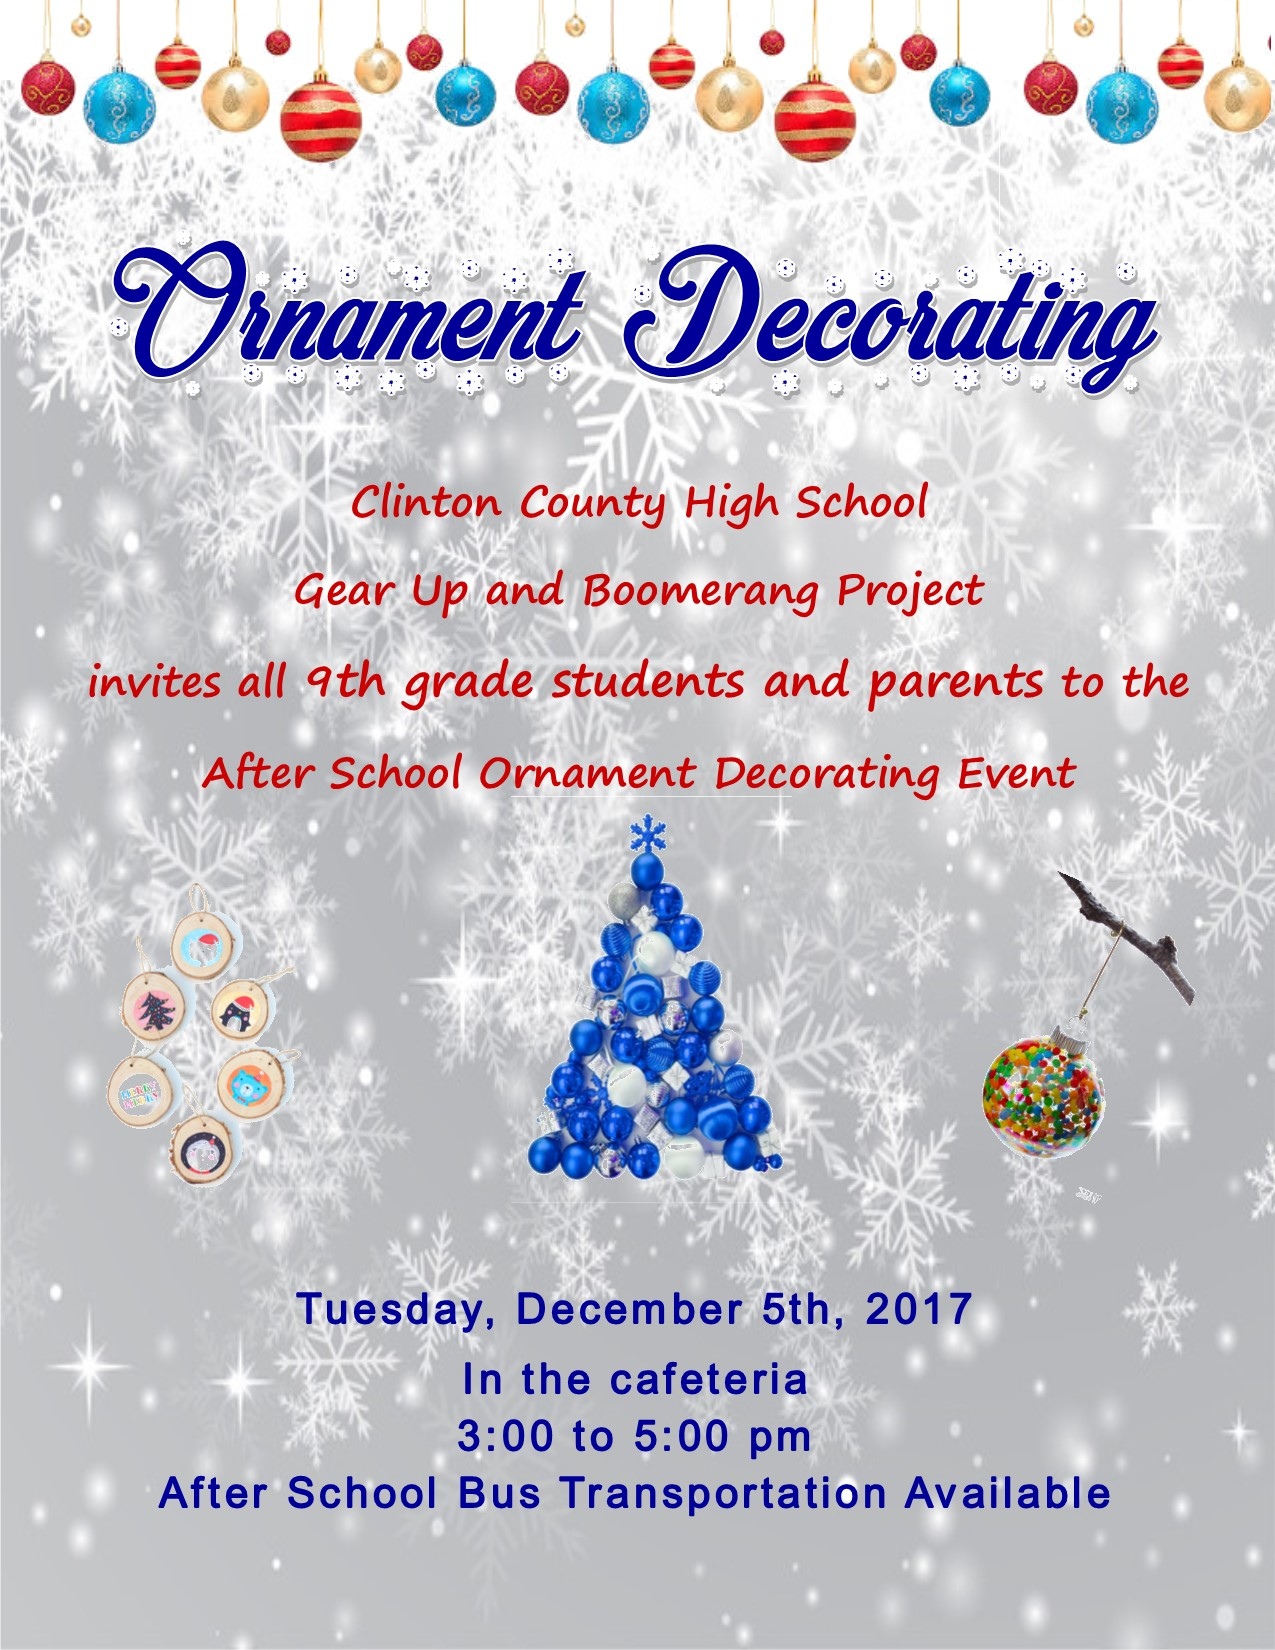 All 9th grade students and parents are invited to an after-school ornament decorating event on December 5th.